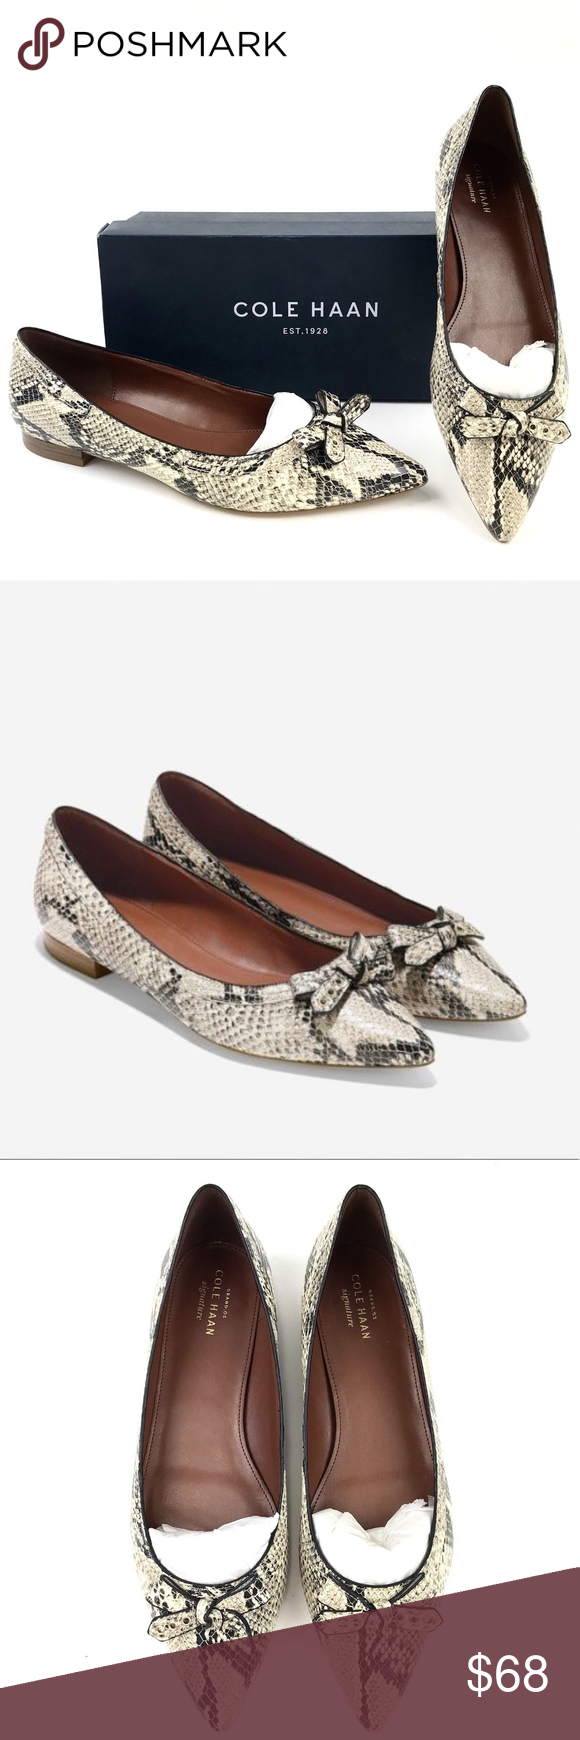 Cole Haan Snakeskin Pointed Toe Bow